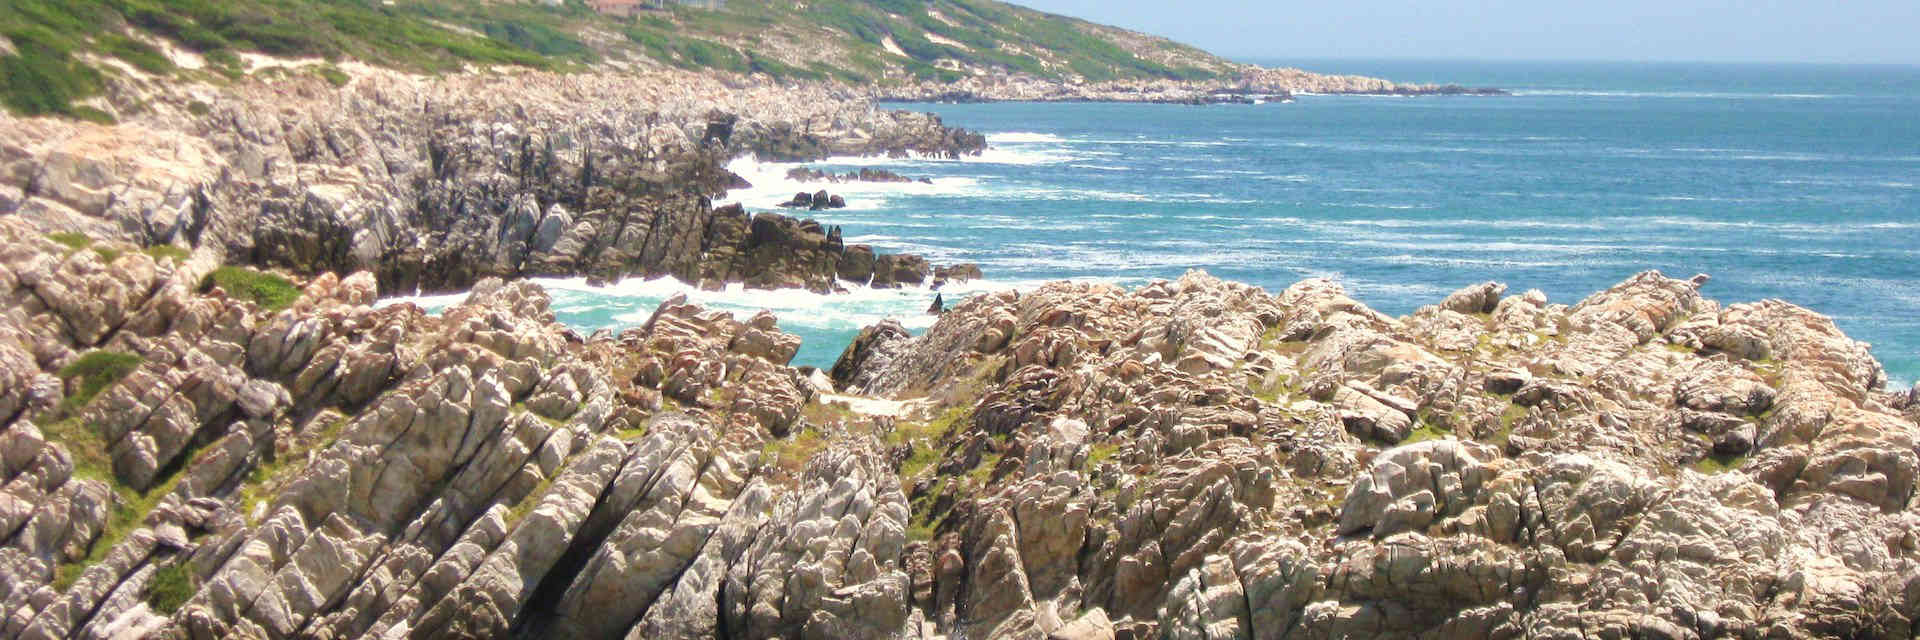 Rocky coastline at De Kelders South Africa